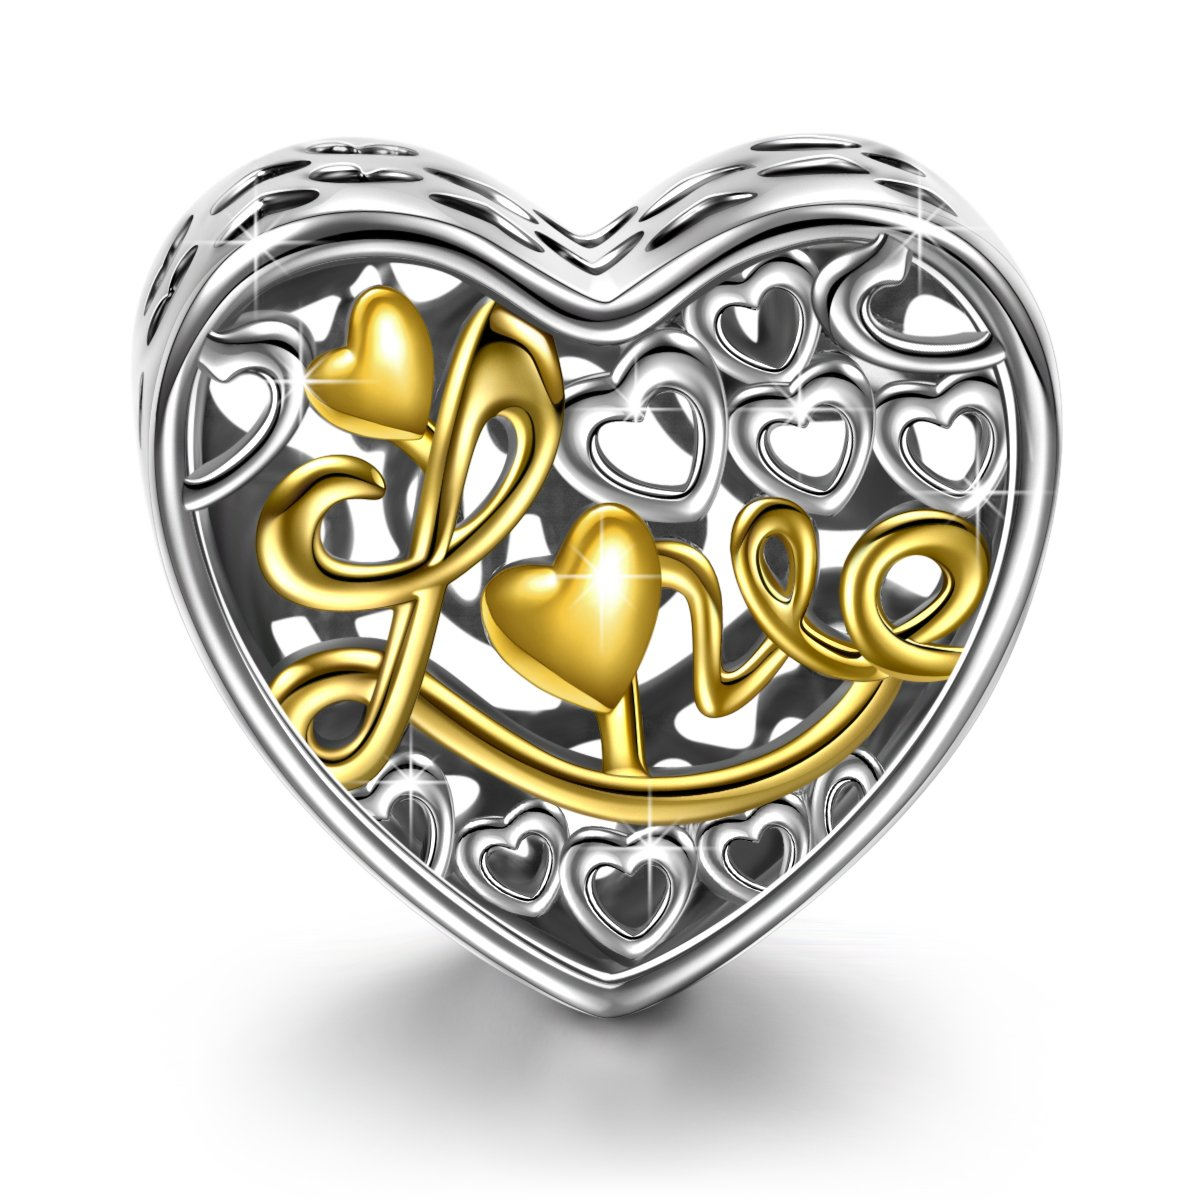 NINAQUEEN ♥Love♥ 925 Sterling Silver Engraved Charm plated with Gold compatible with Standard Bracelet Best Choice for Women Girls